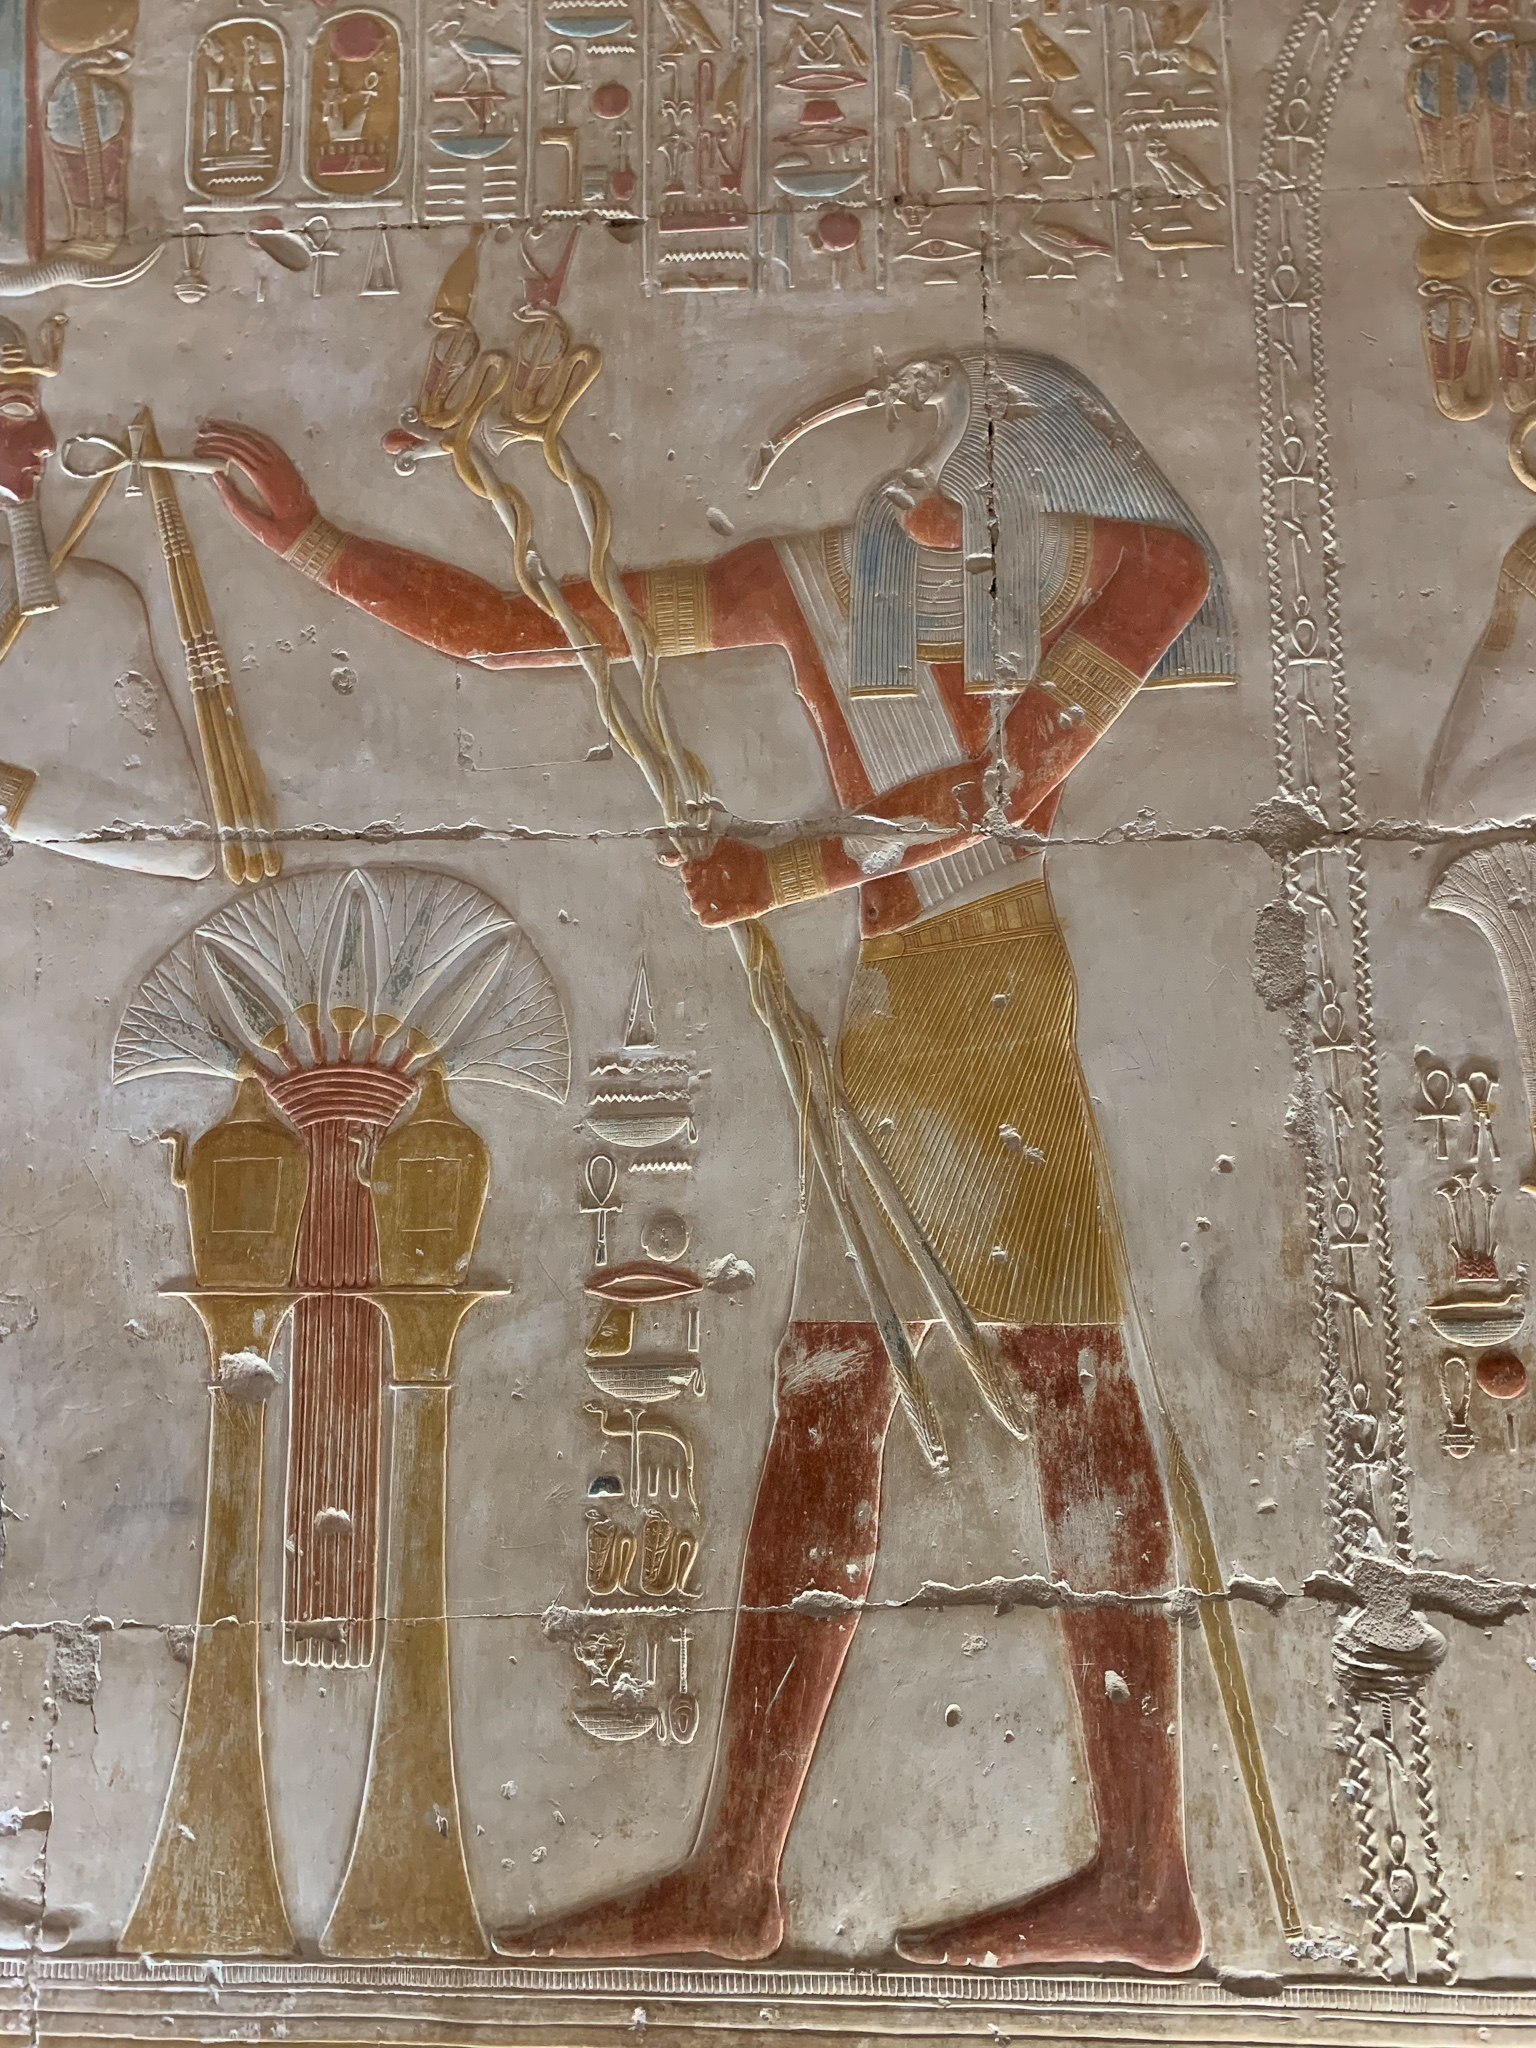 Abydos, the temple of Seti I